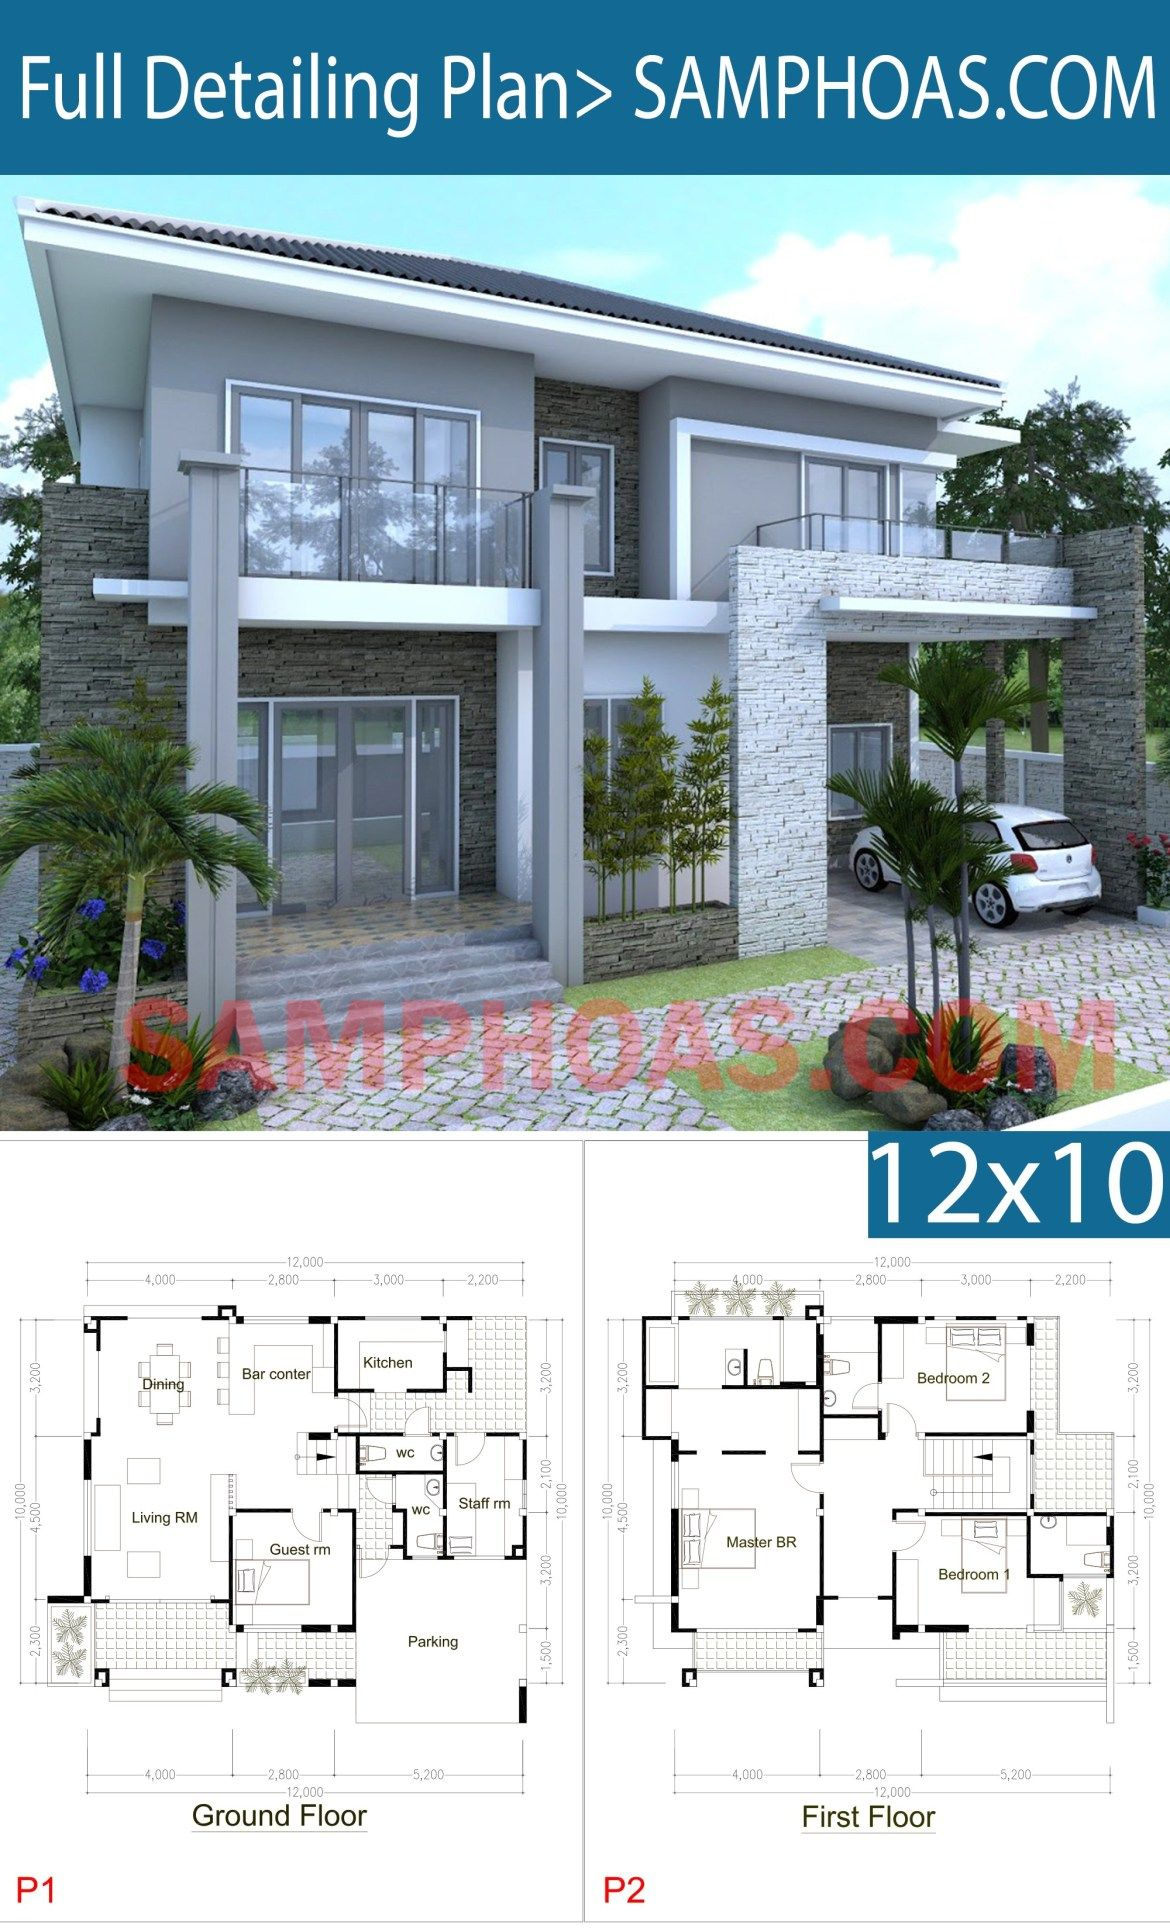 5 Bedrooms Modern Home 10x12m Samphoas Plansearch House Arch Design Contemporary House Plans Beautiful House Plans